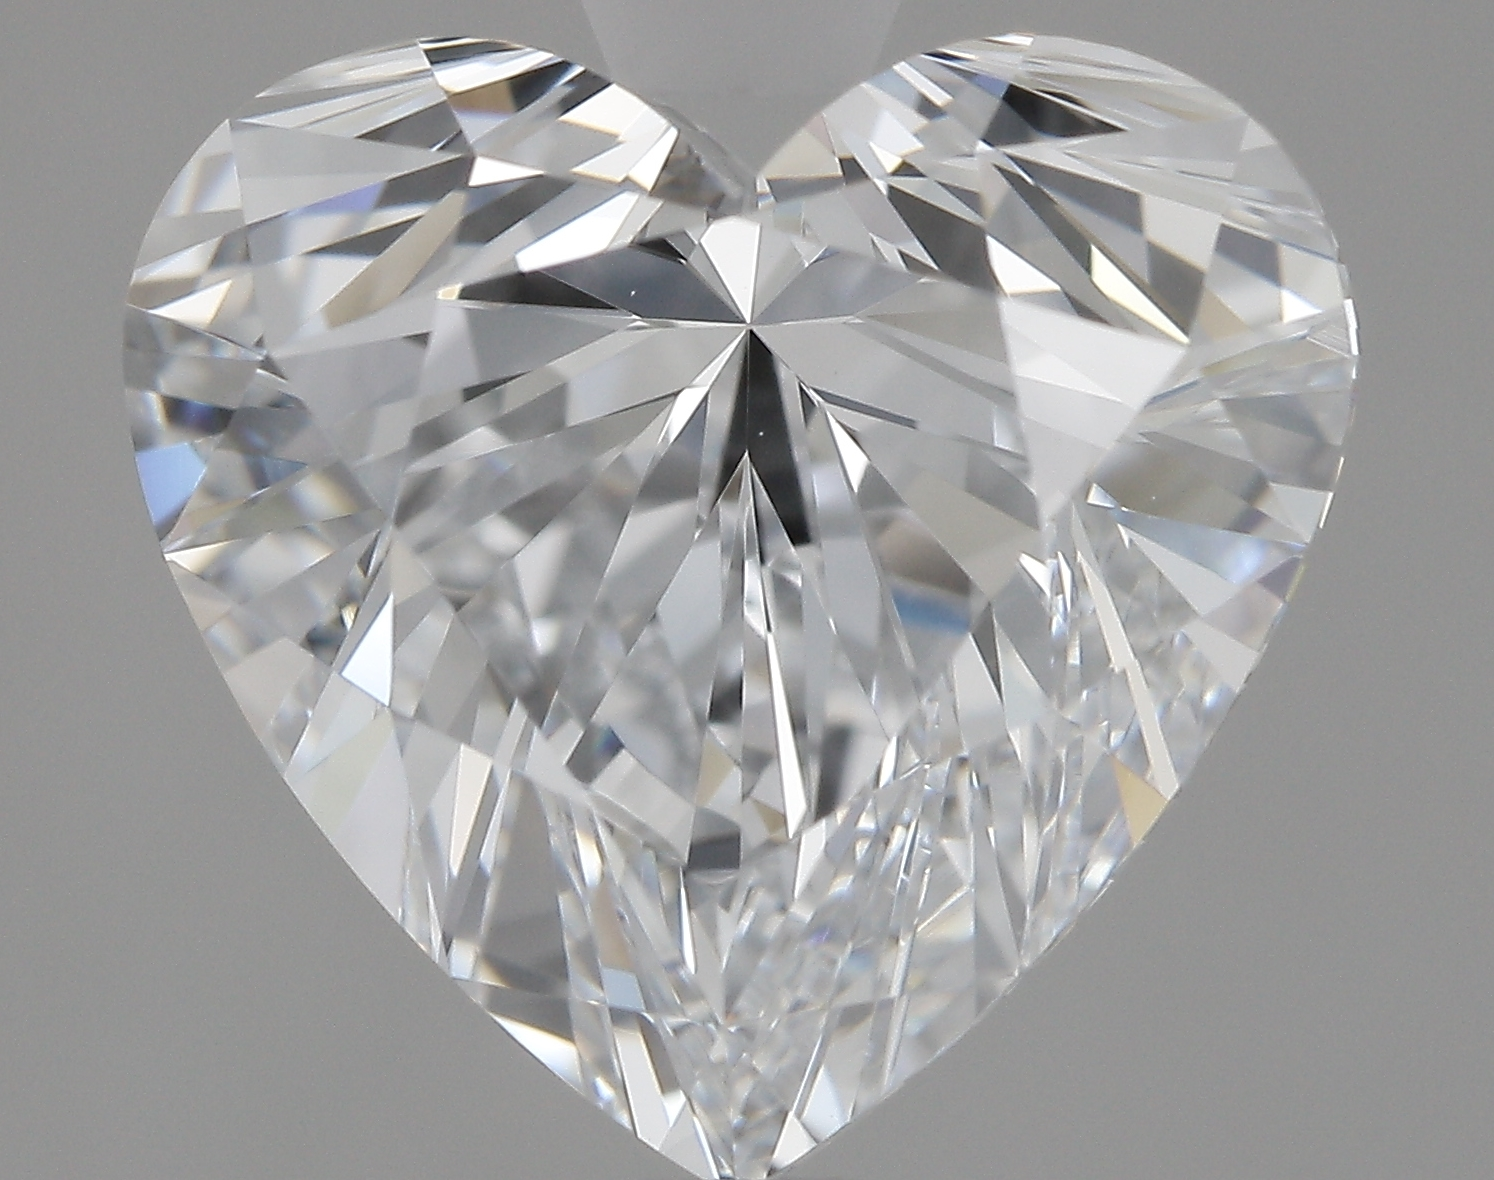 3.06 Carat F-VVS1 Excellent Heart Diamond